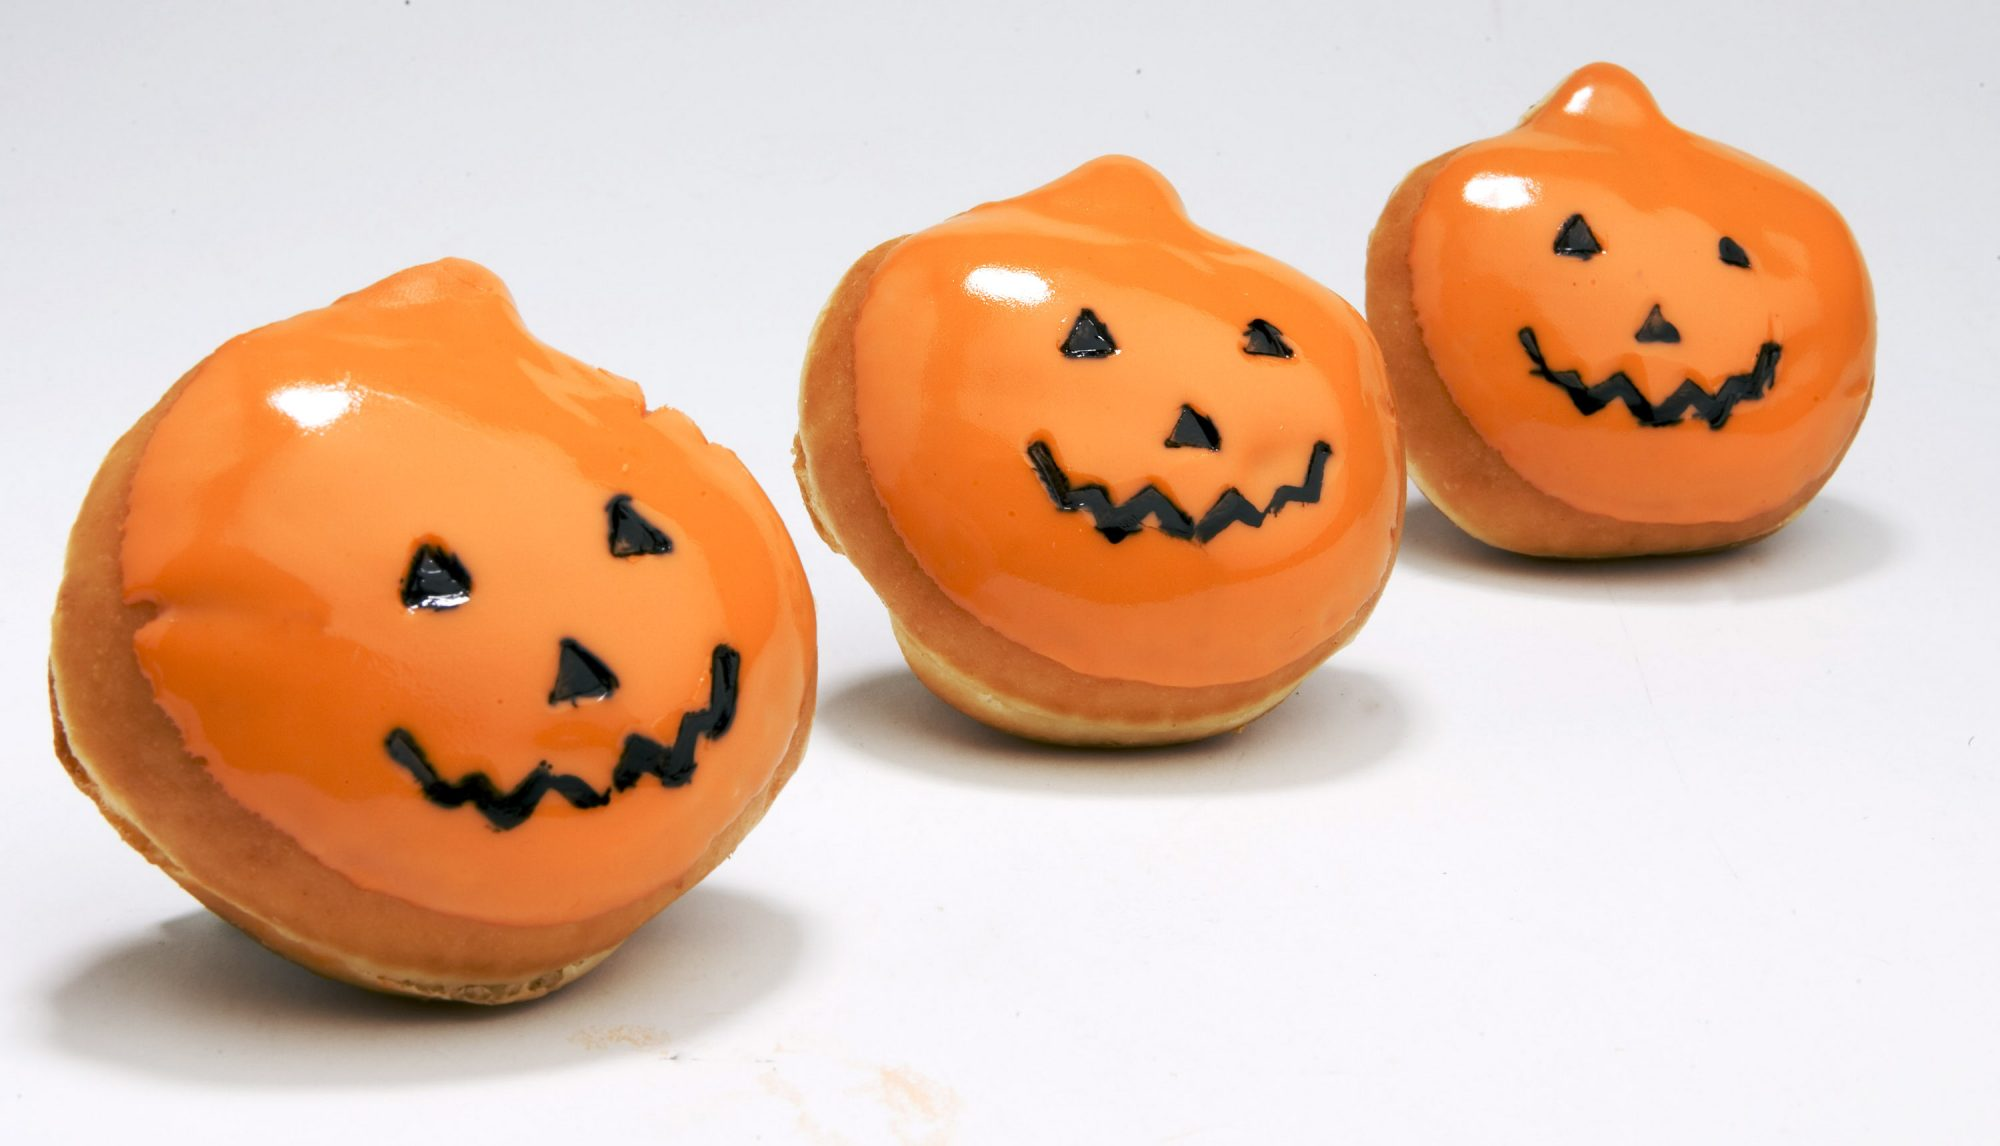 Krispy Kreme's signature doughnut gets a jack-o'-lantern shape and sweet orange frosting for a Halloween treat.